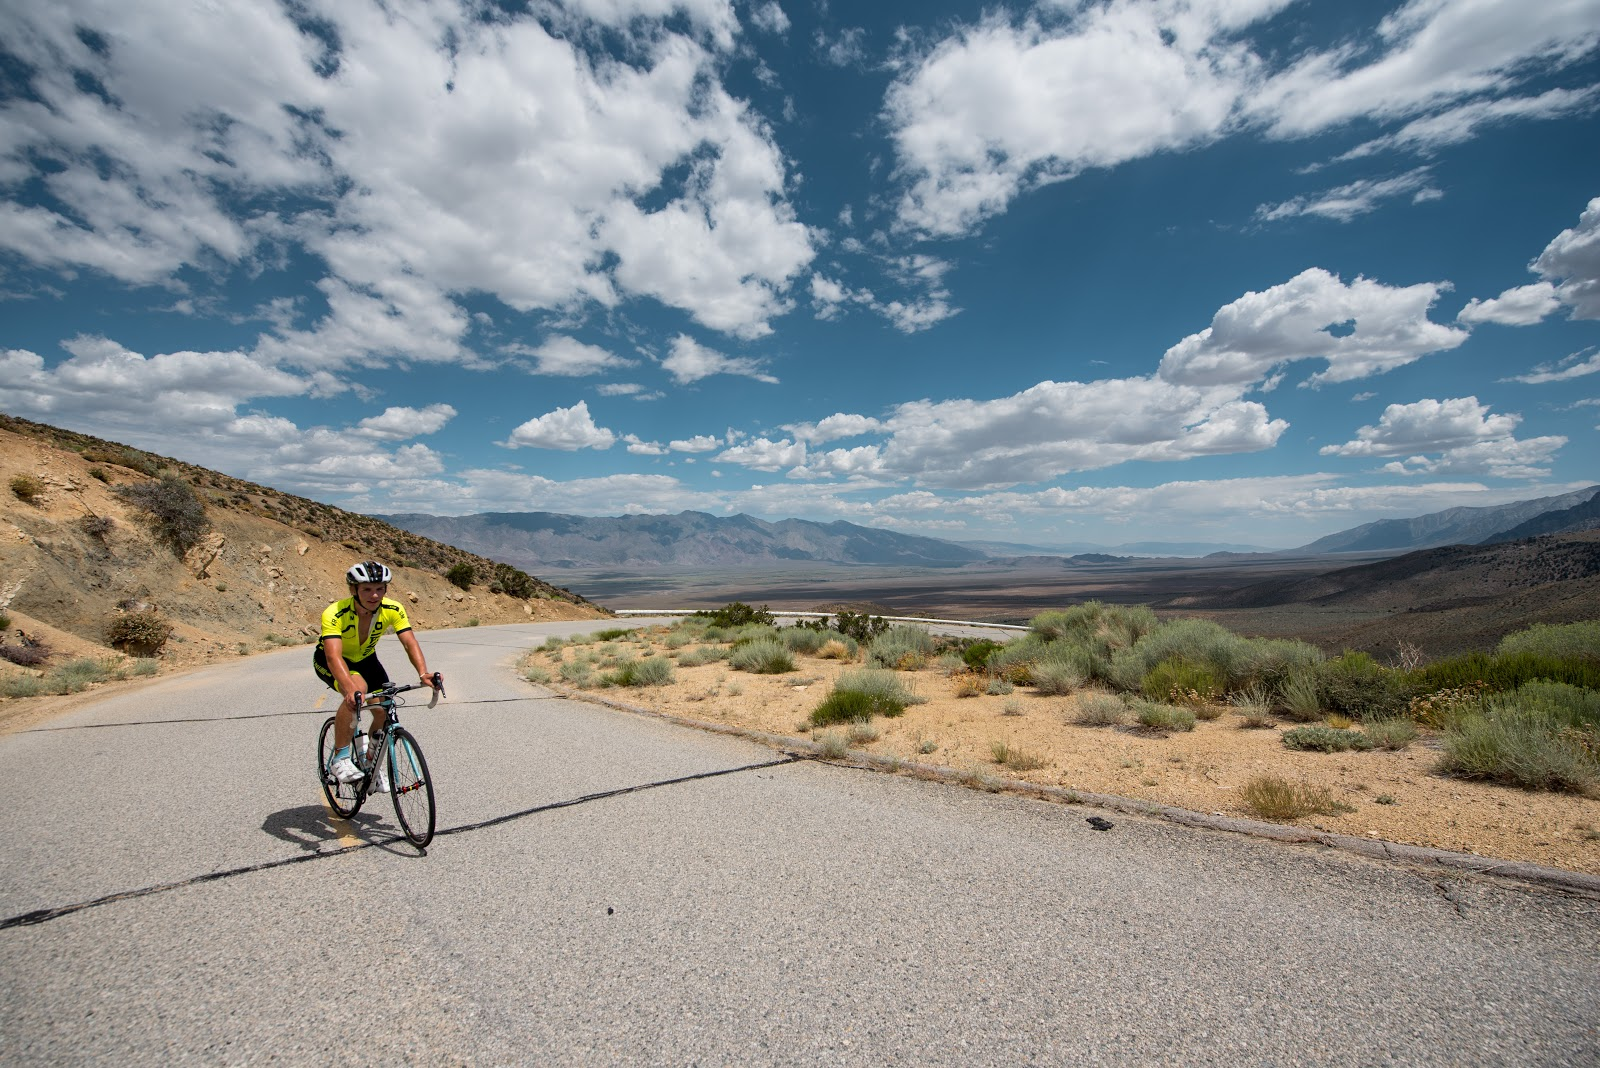 Bike climb  Owens Valley - pjamm cyclist on bike on road with clouds